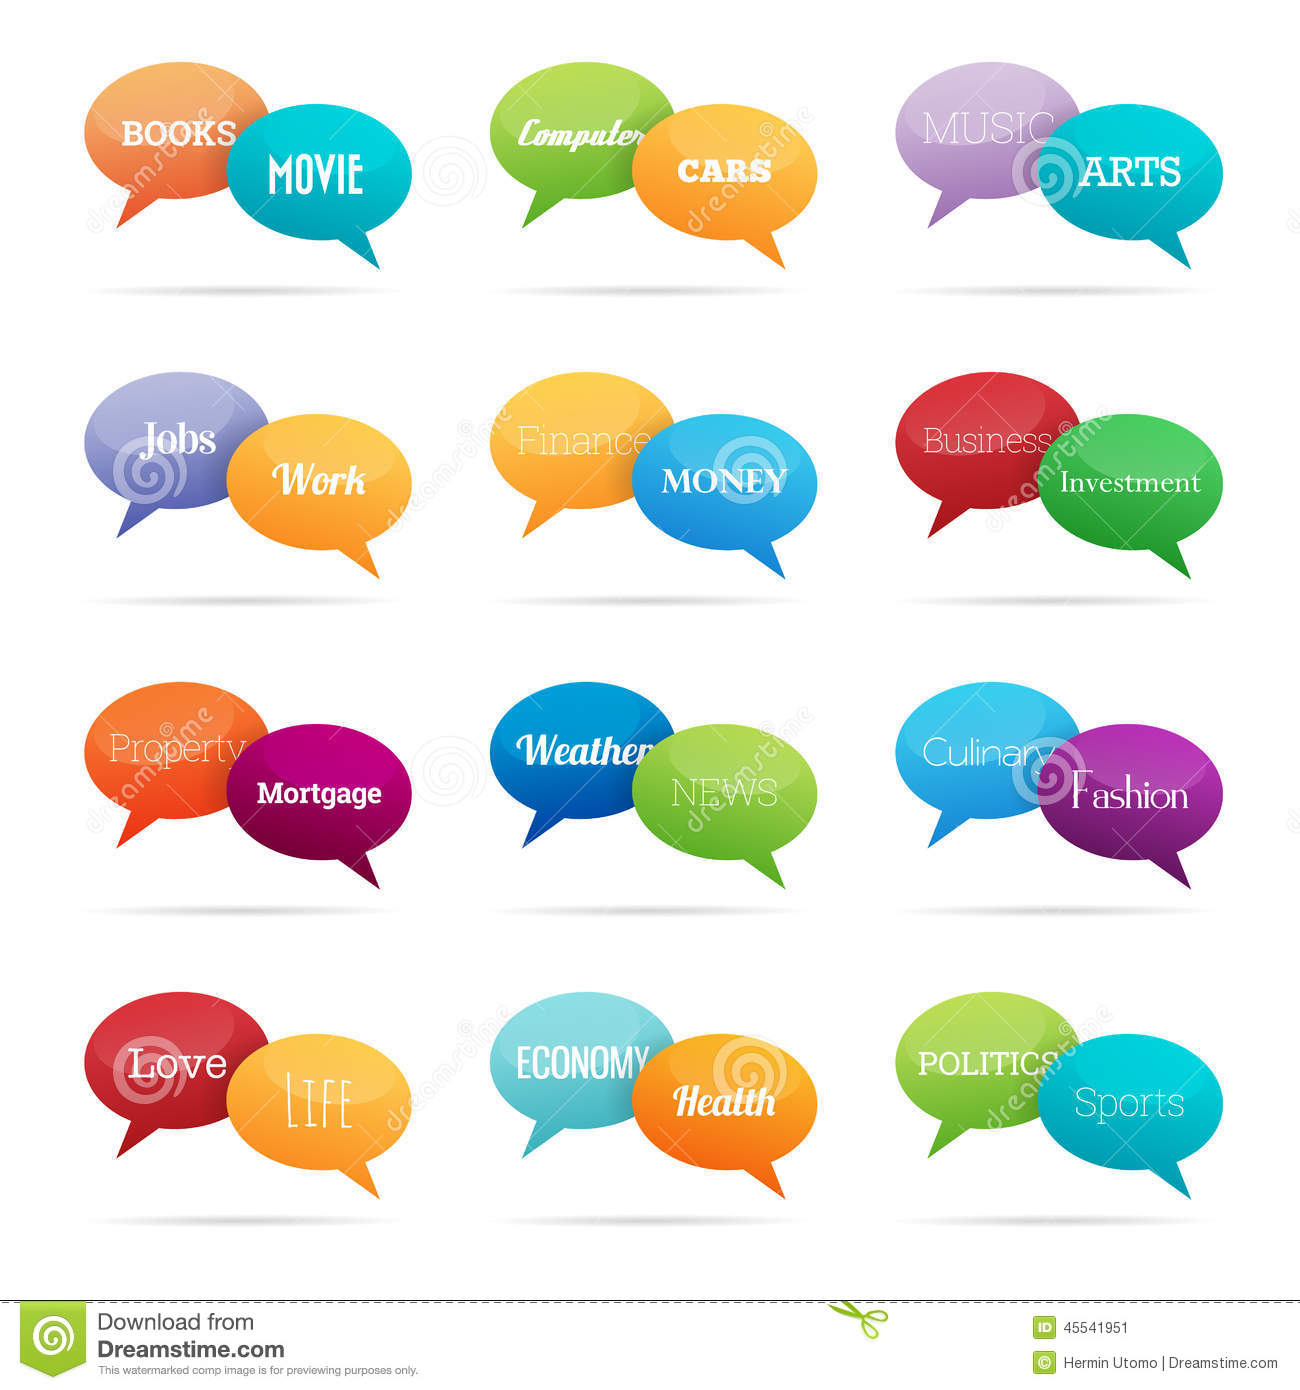 Topics to chat about